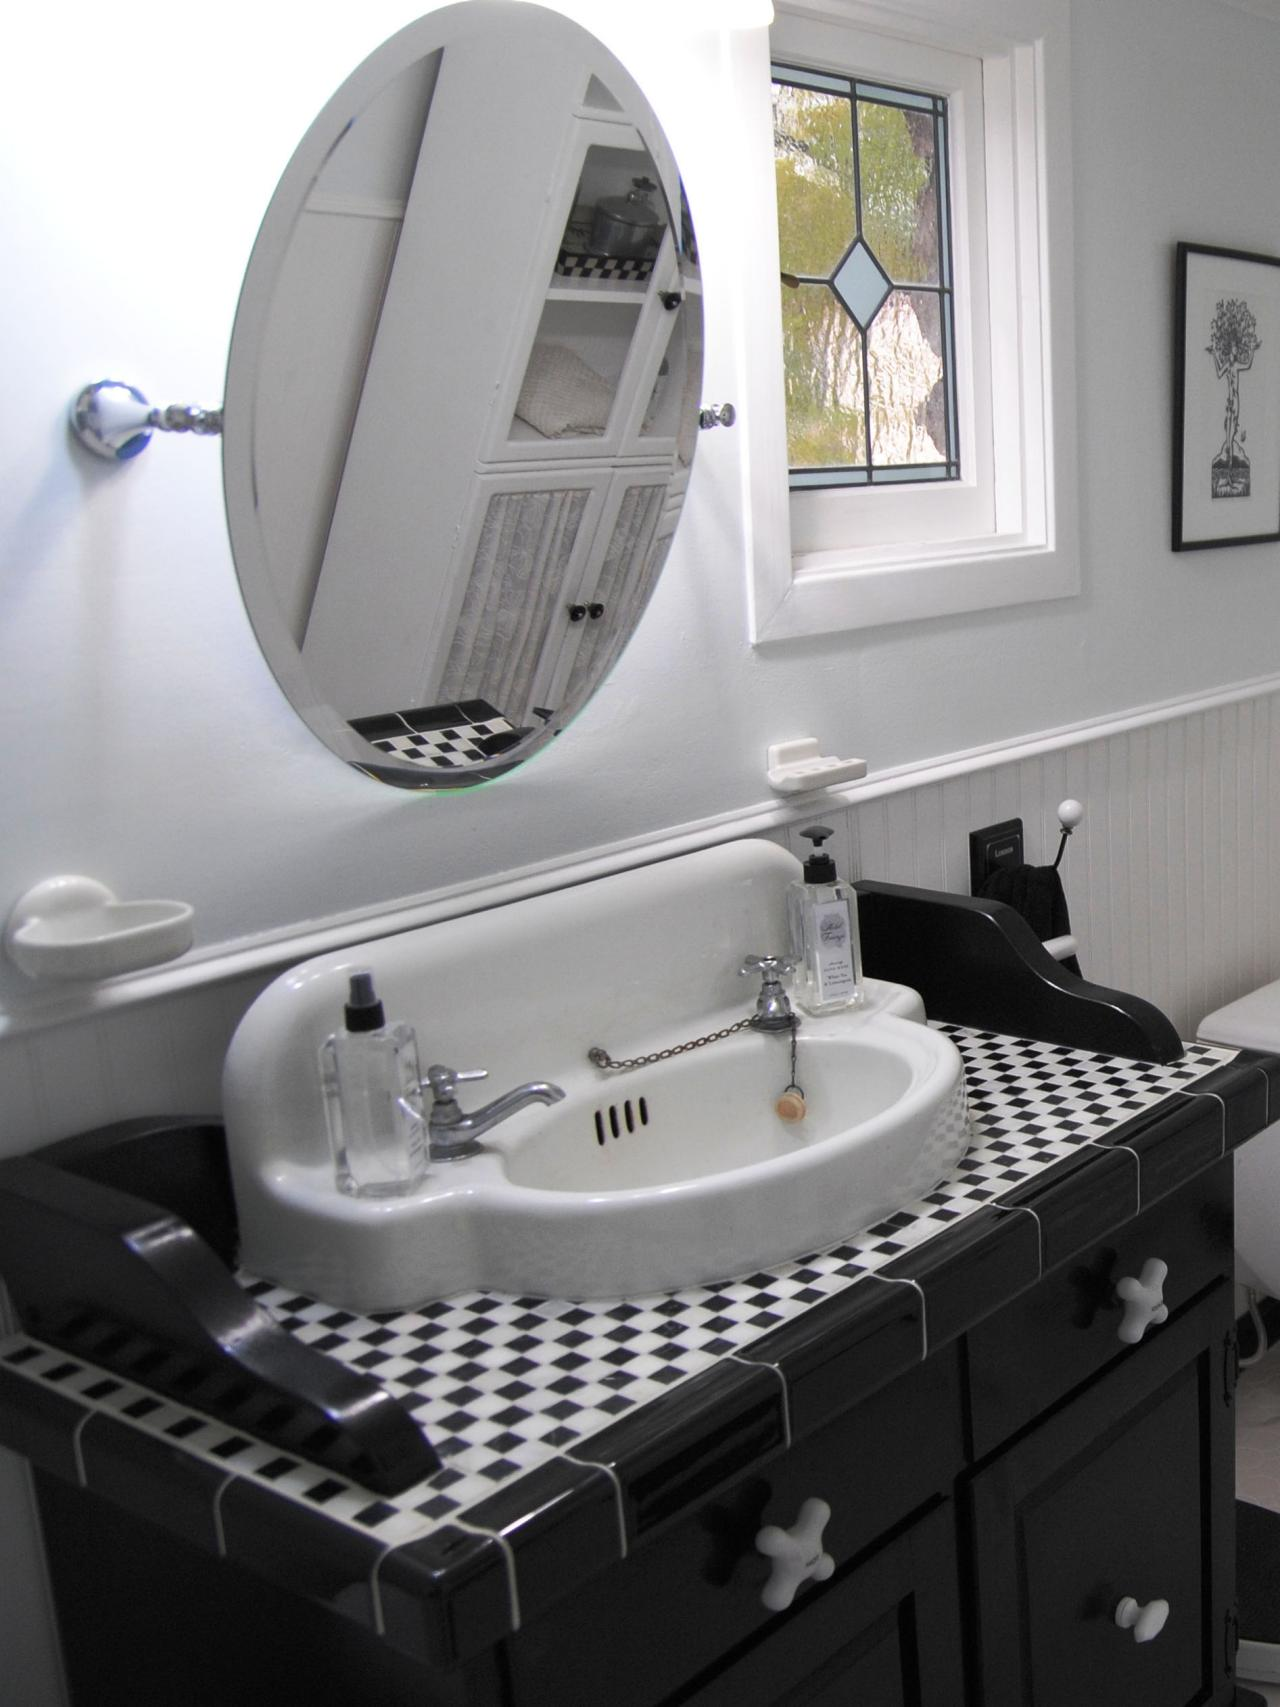 Converting an old dresser into a bathroom vanity hgtv - Bathroom vanities made from old dressers ...